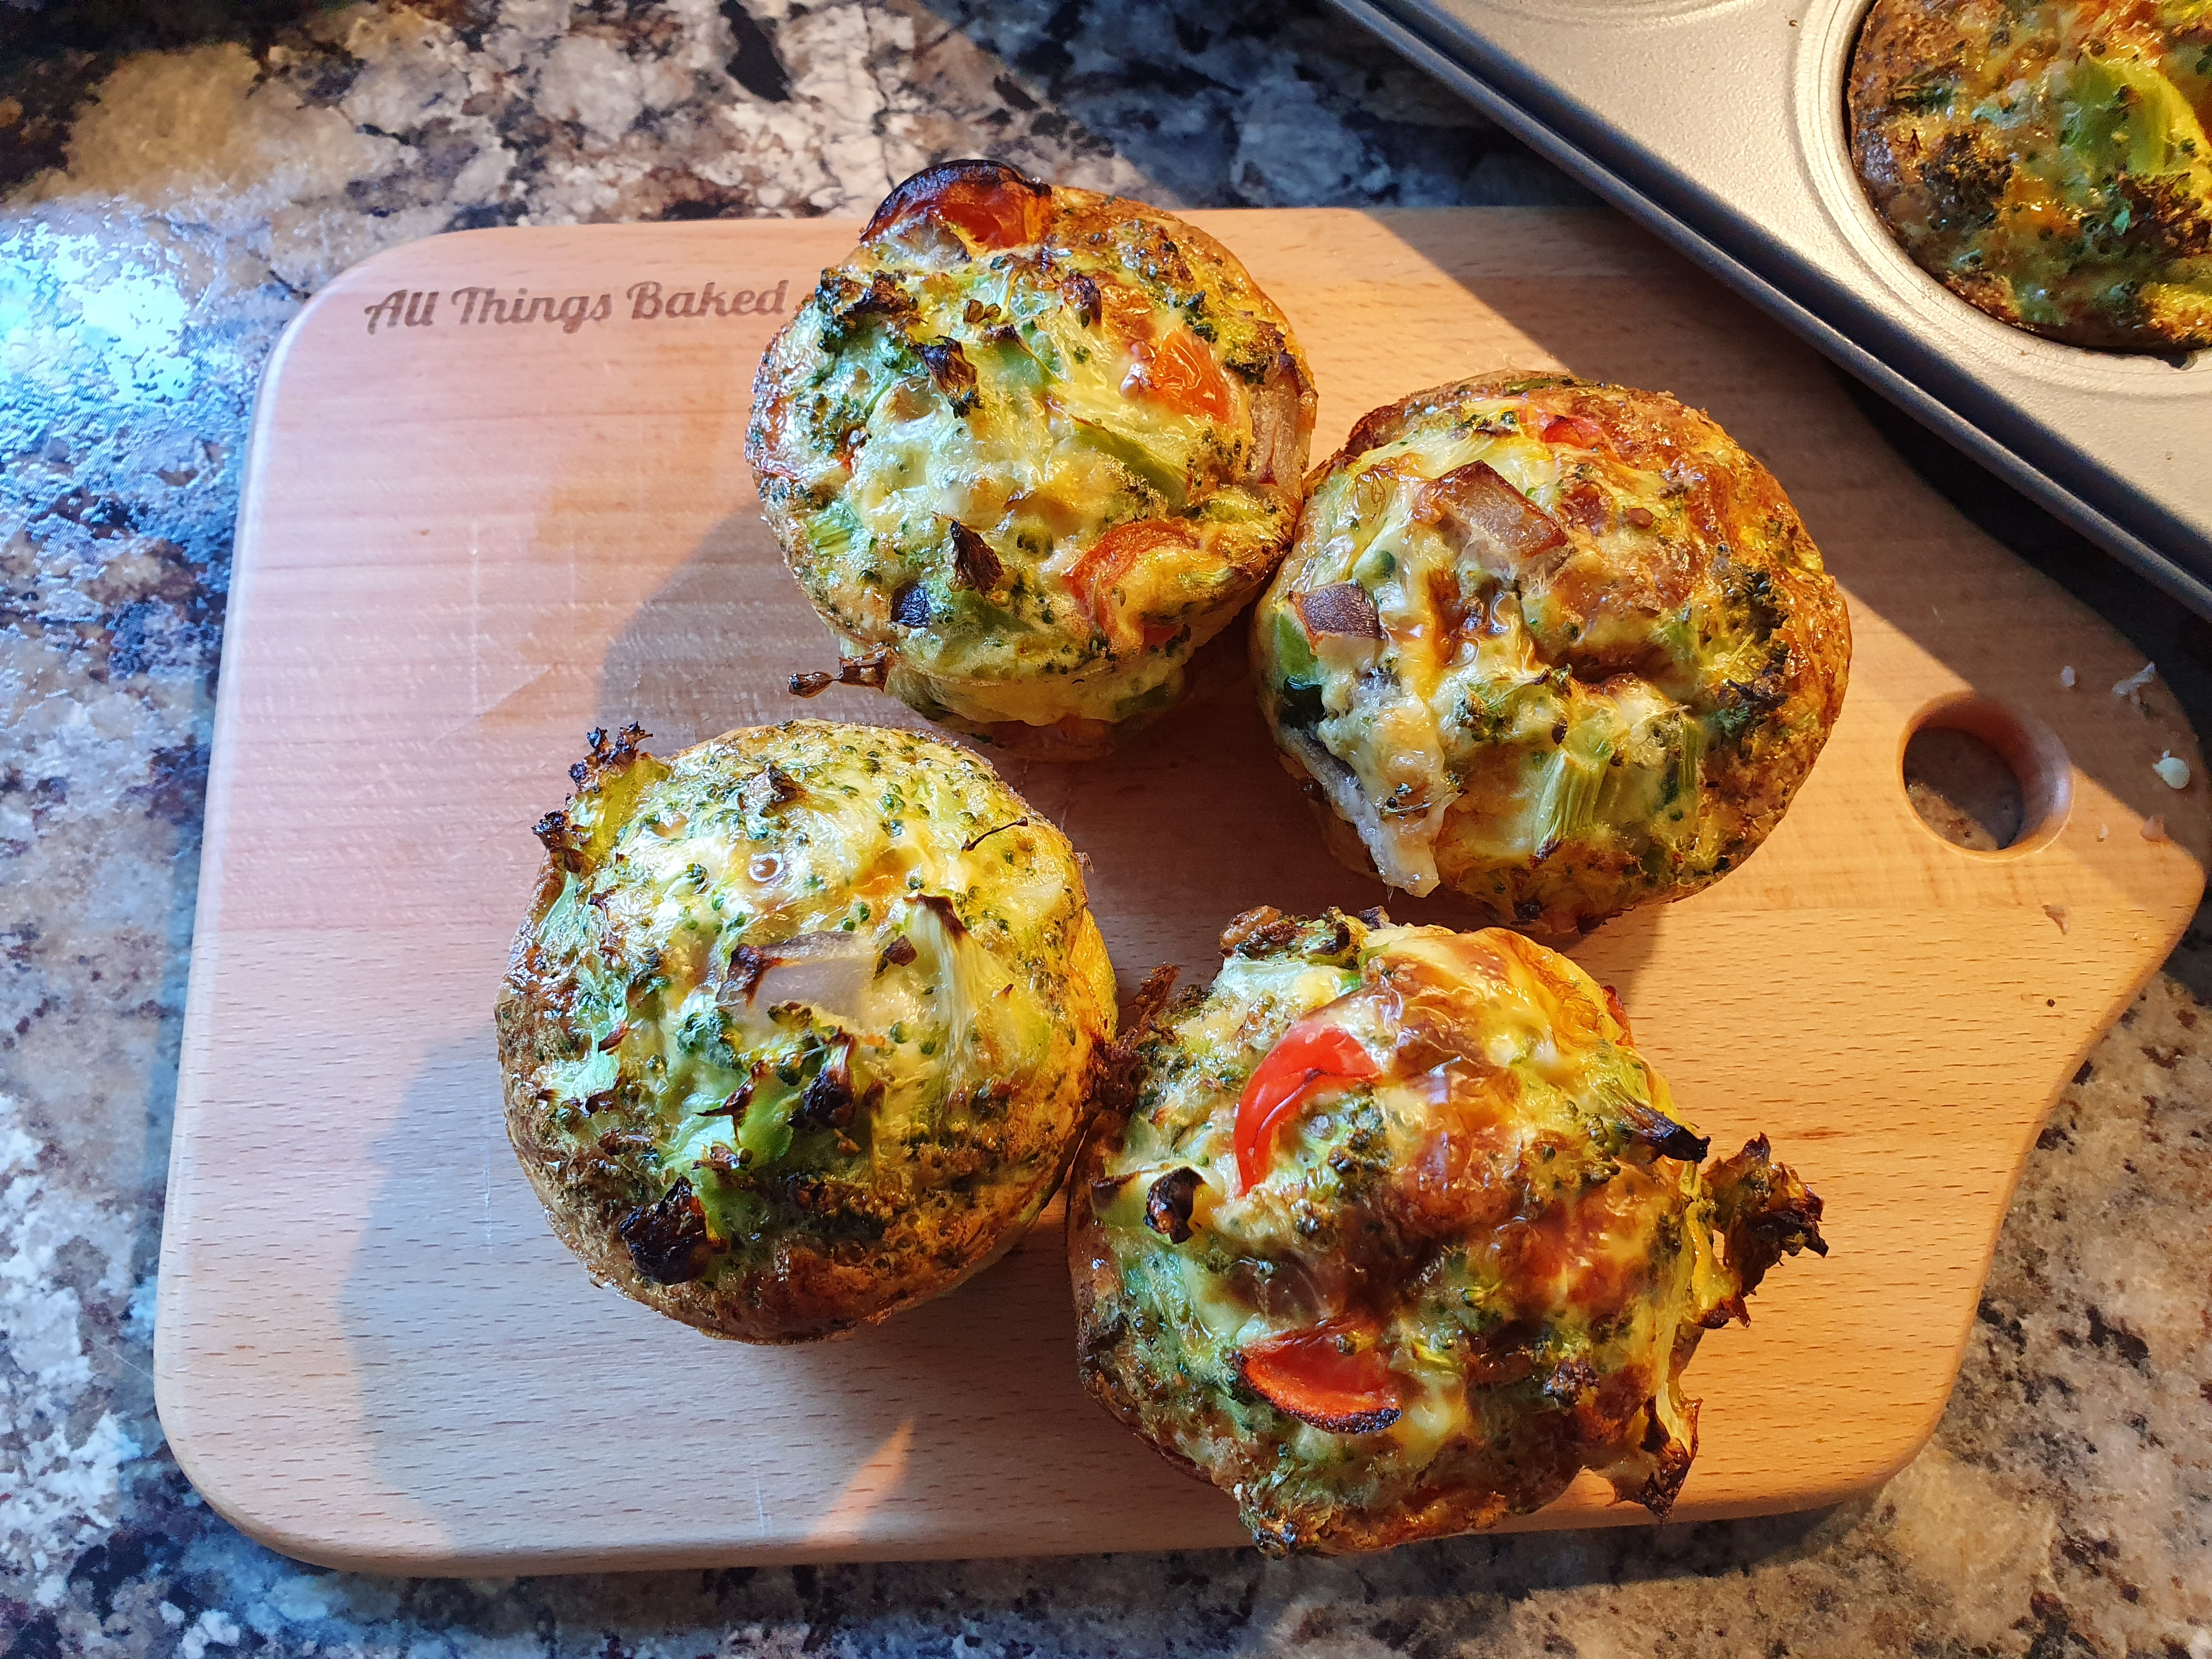 Egg and broccoli muffins baked